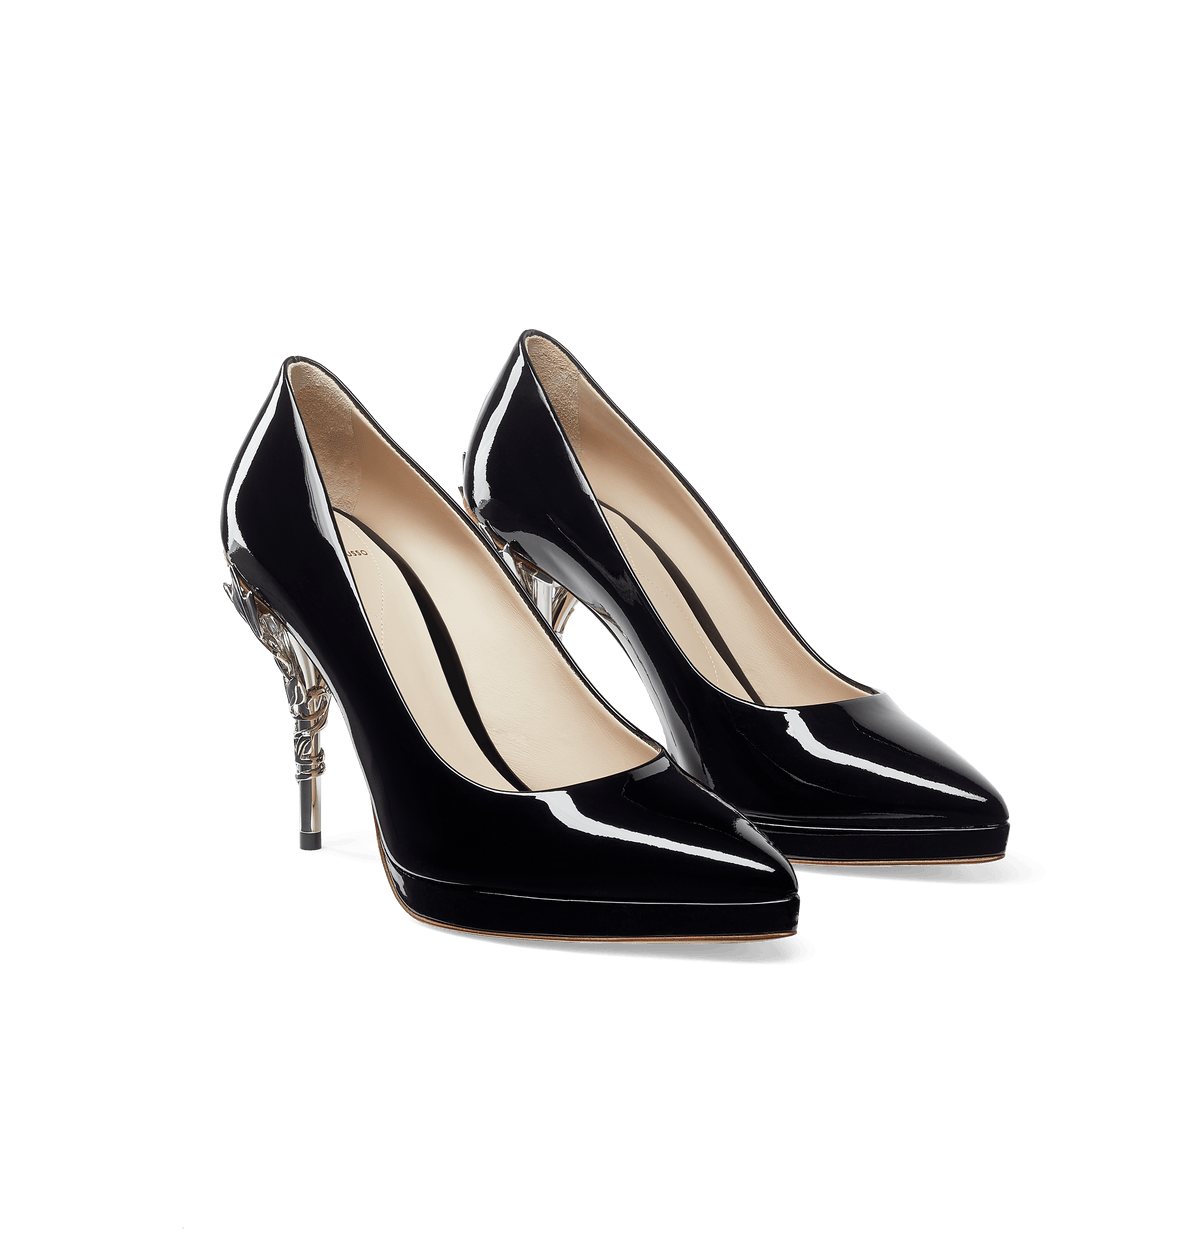 Black Patent Leather Eden Platform Heels with Silver Leaves